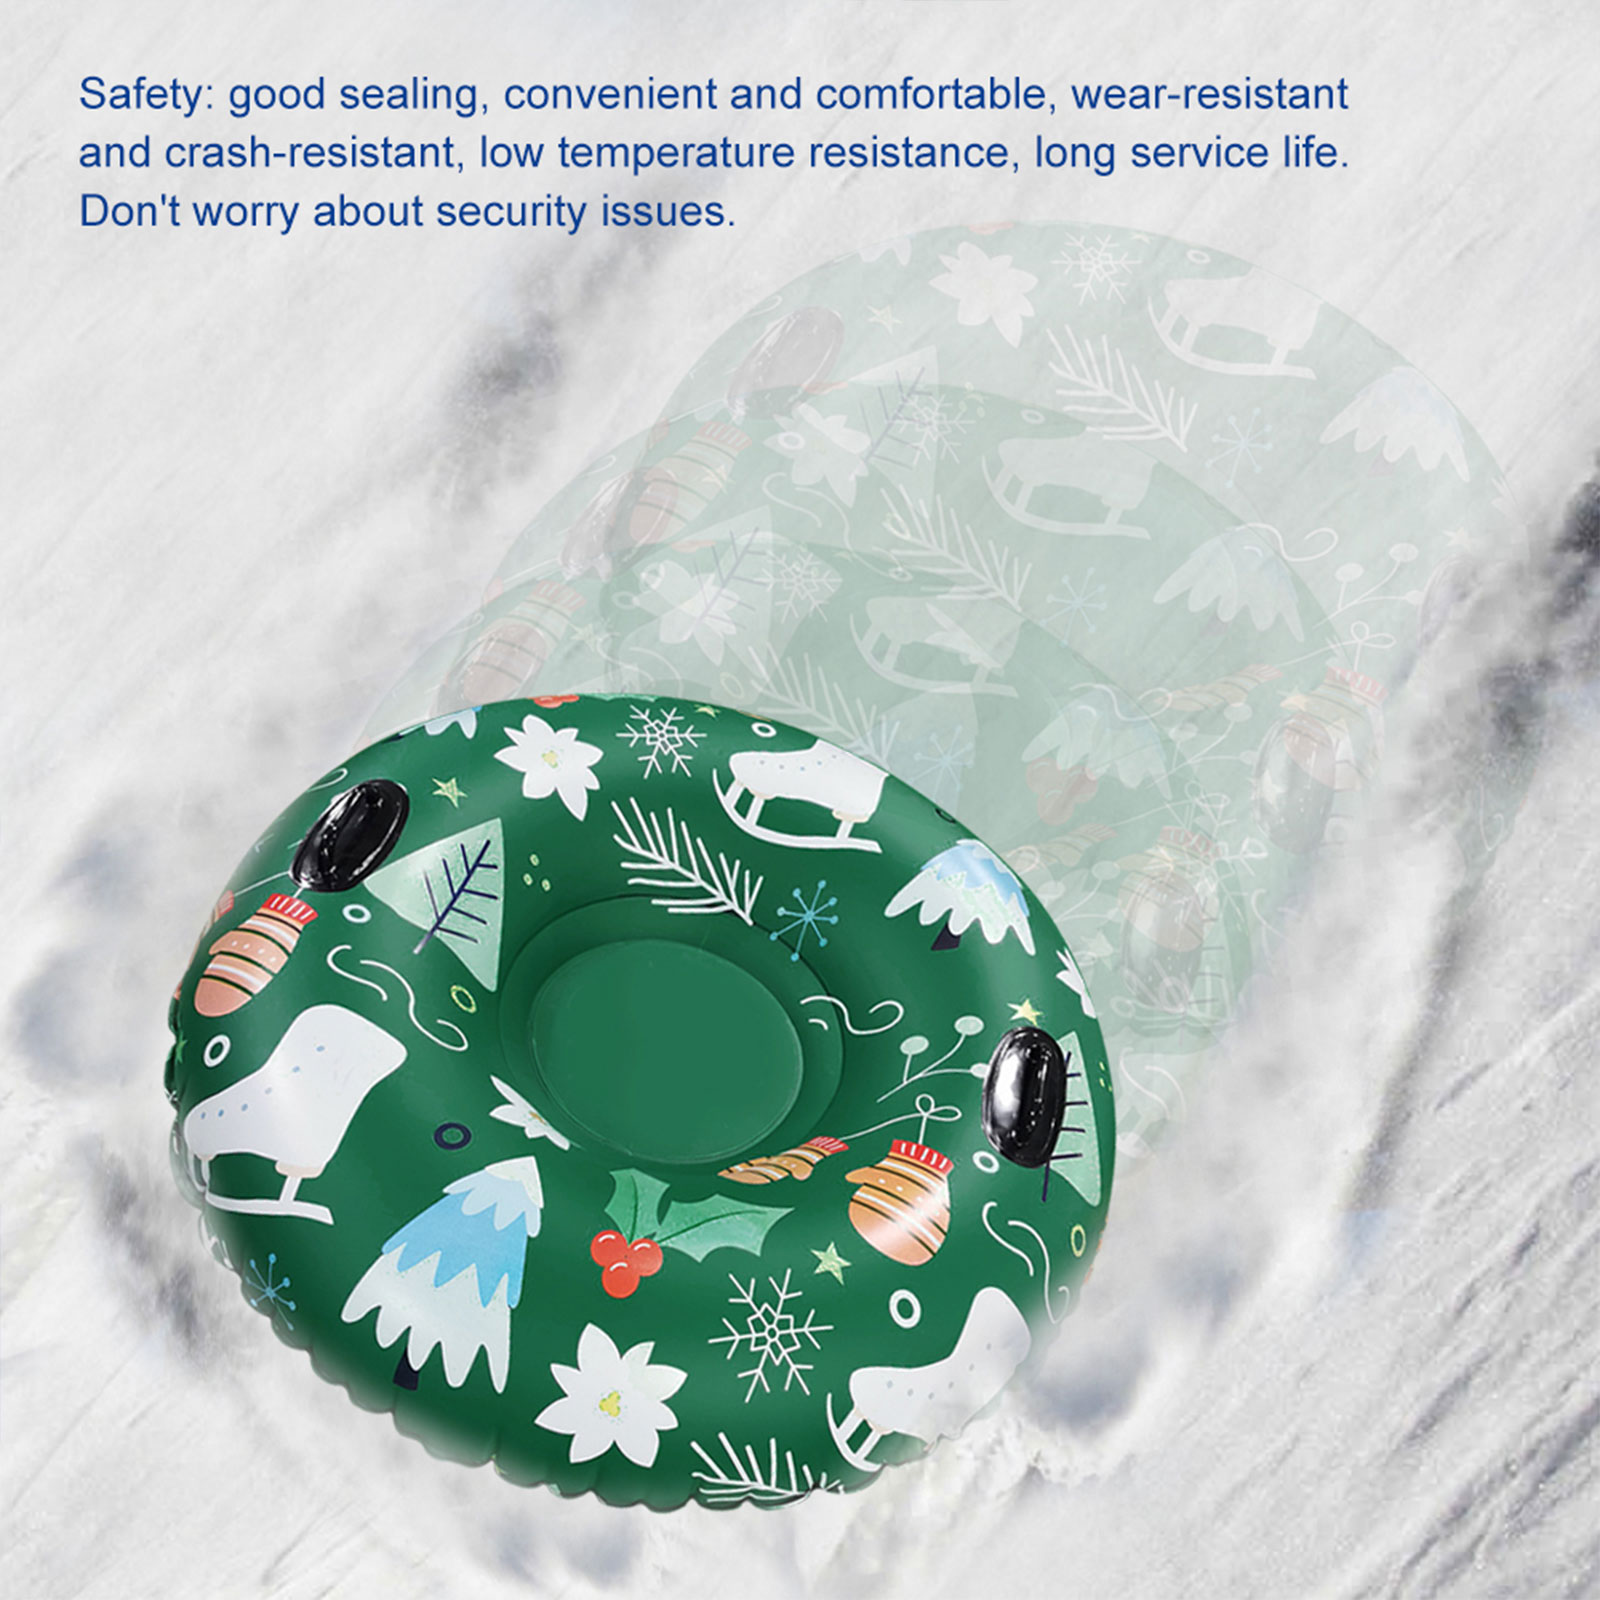 Large Thick Snow Sled Sledding Board With Handles For Skating Winter Outdoor Fun Sanmubo Snow Tube Inflatable Heavy Duty Inflatable Snow Sled For Kids Adults